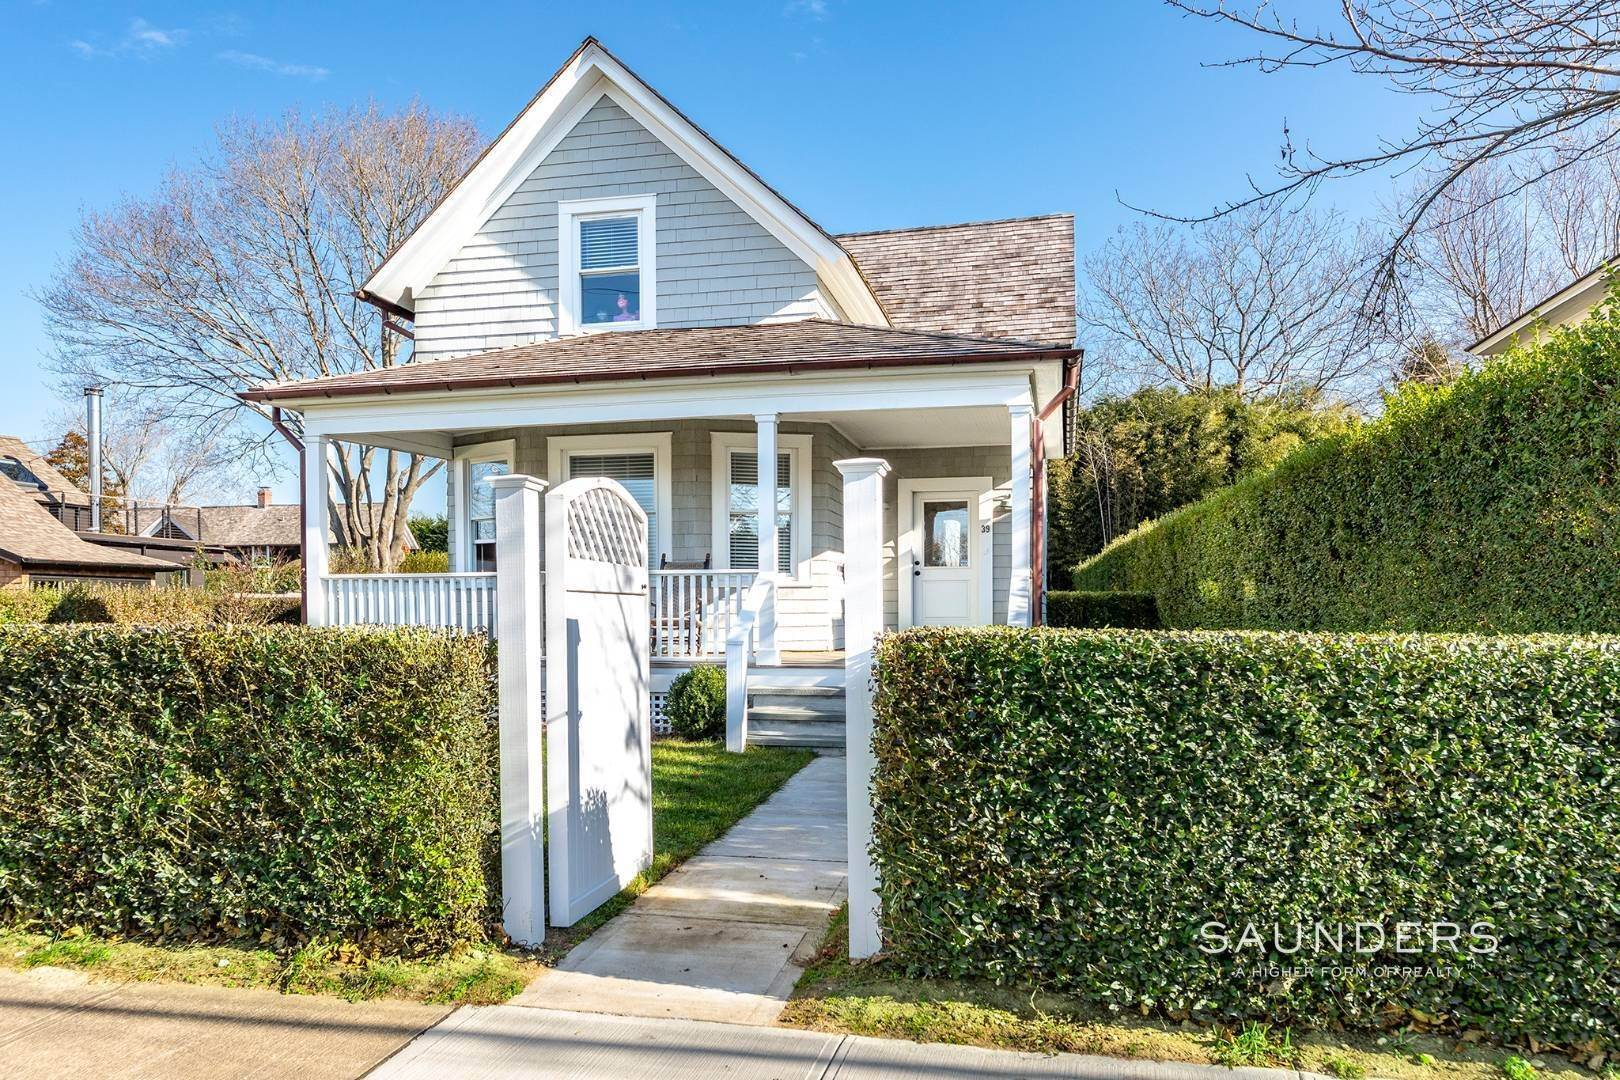 Single Family Homes for Sale at Turnkey Bridgehampton Village Charmer 39 Corwith Avenue, Bridgehampton, Southampton Town, NY 11932